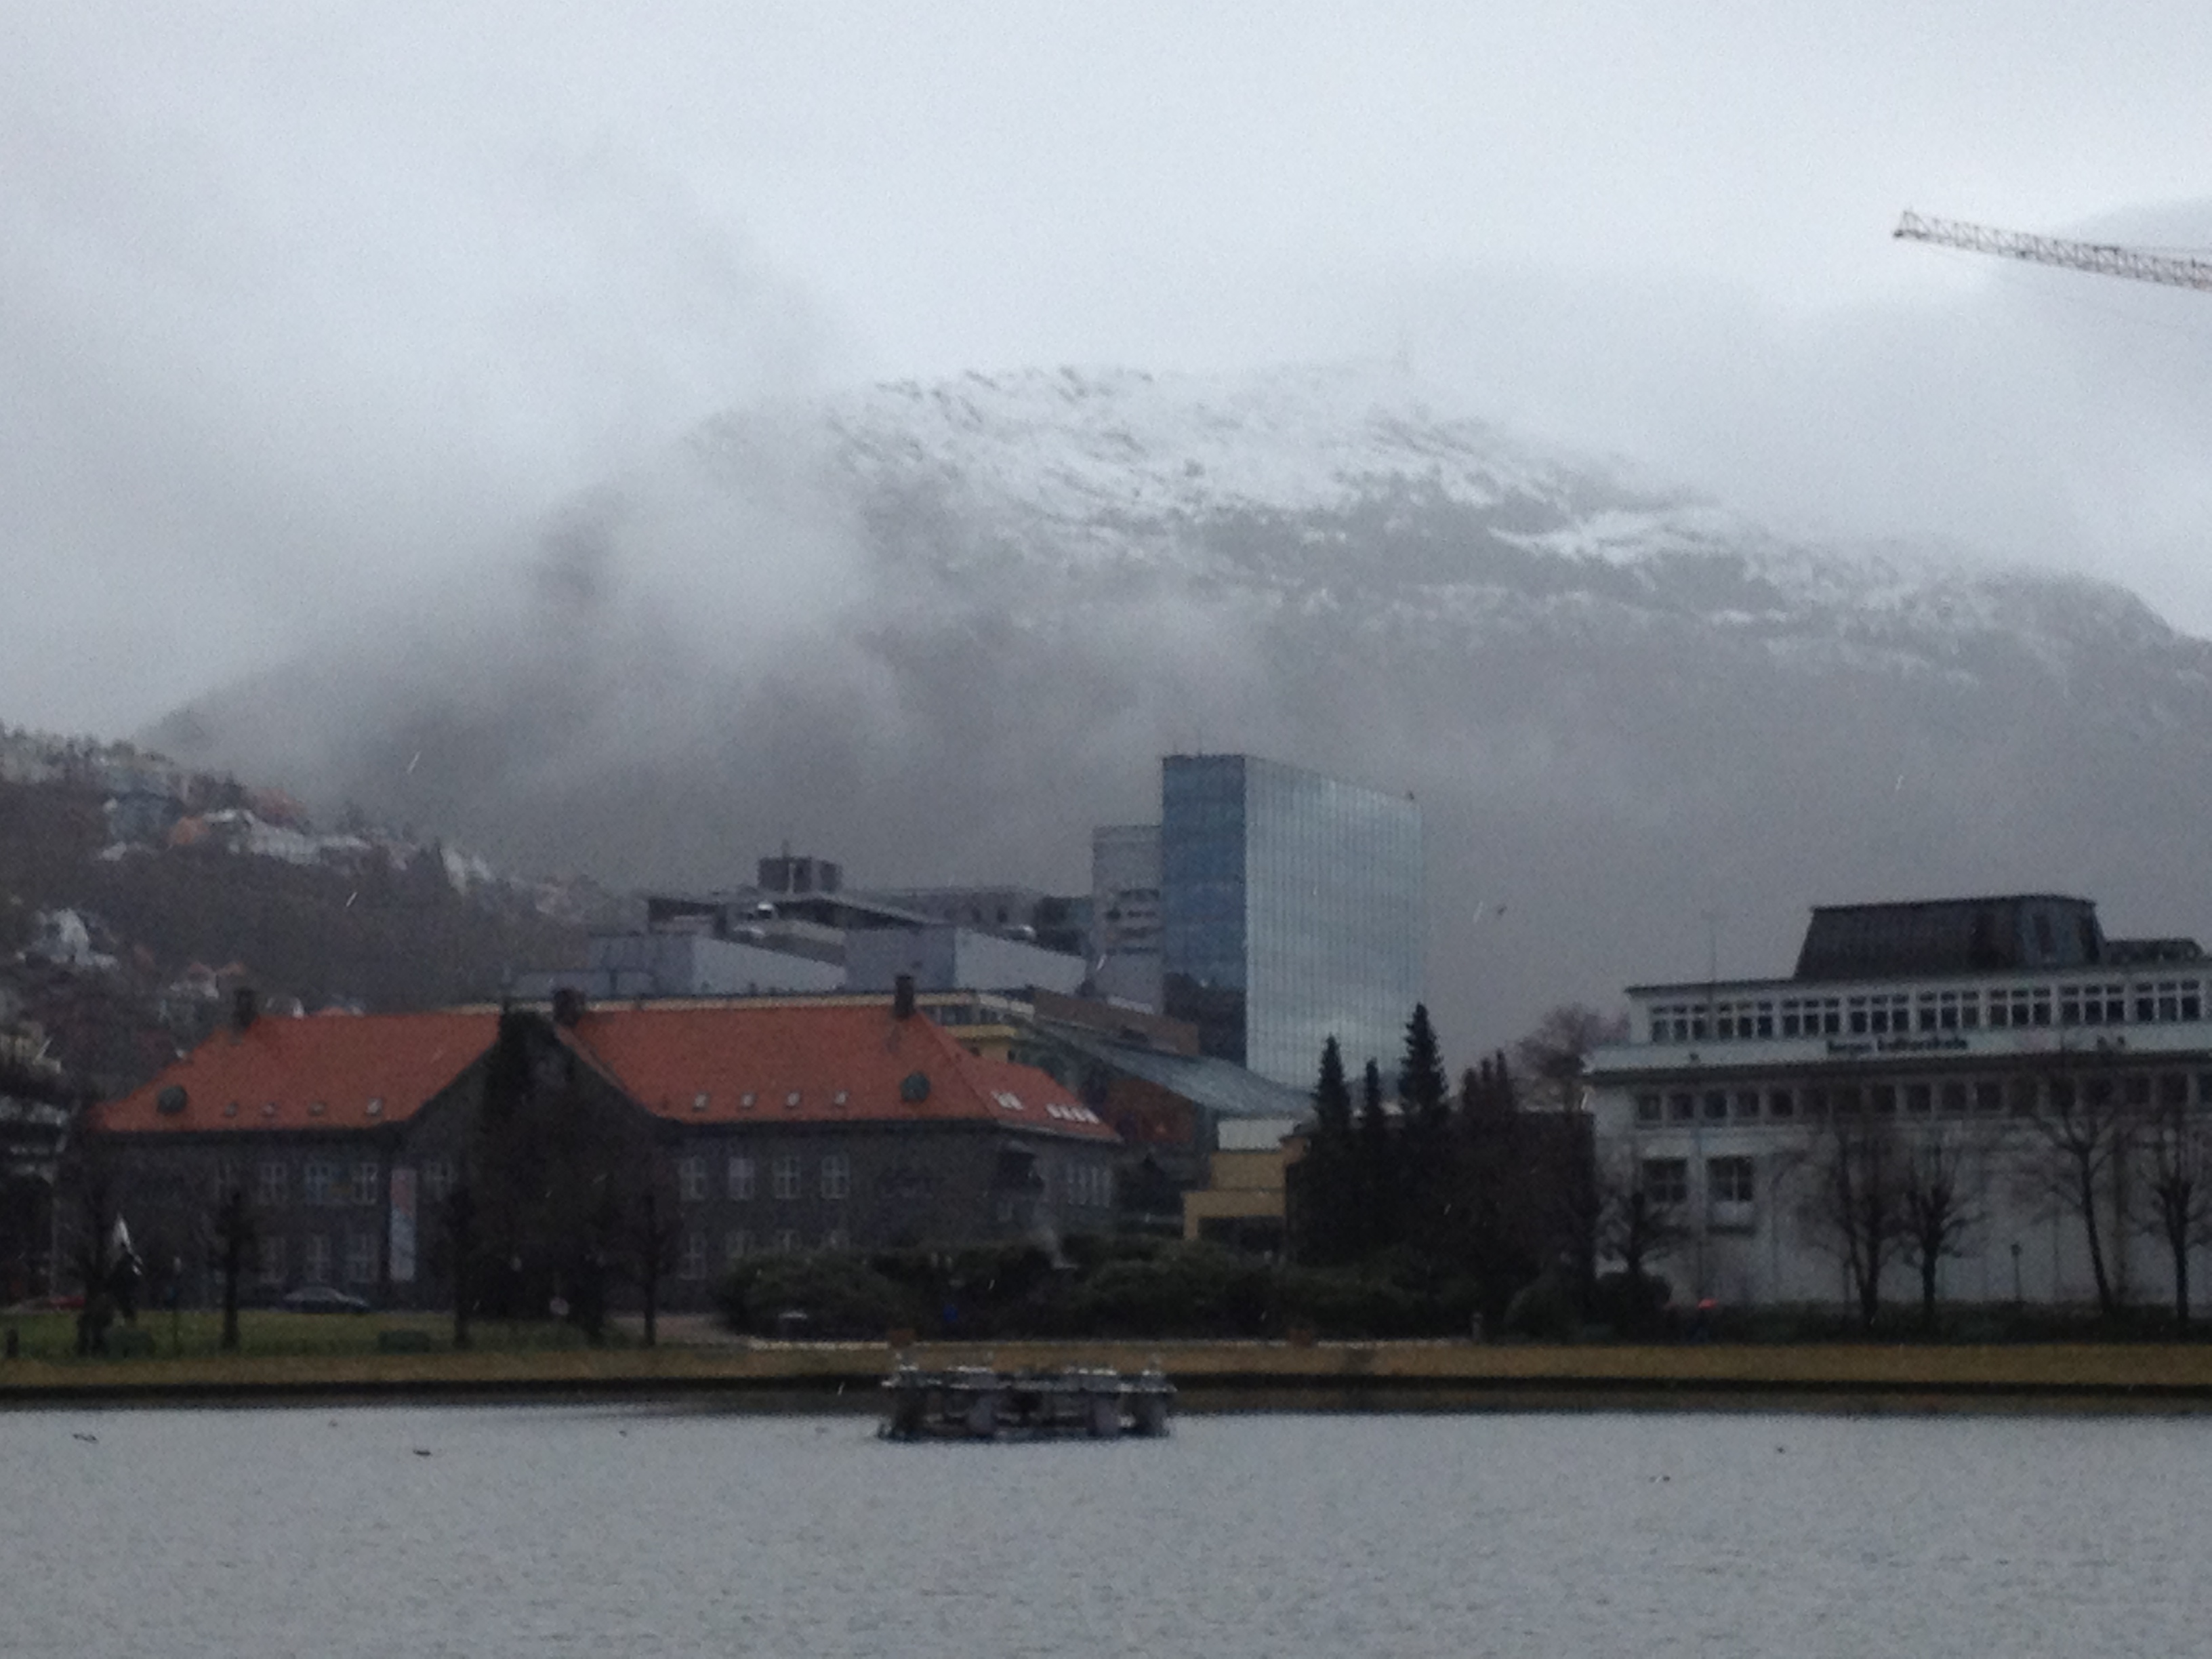 One of the 7 hills above Bergen